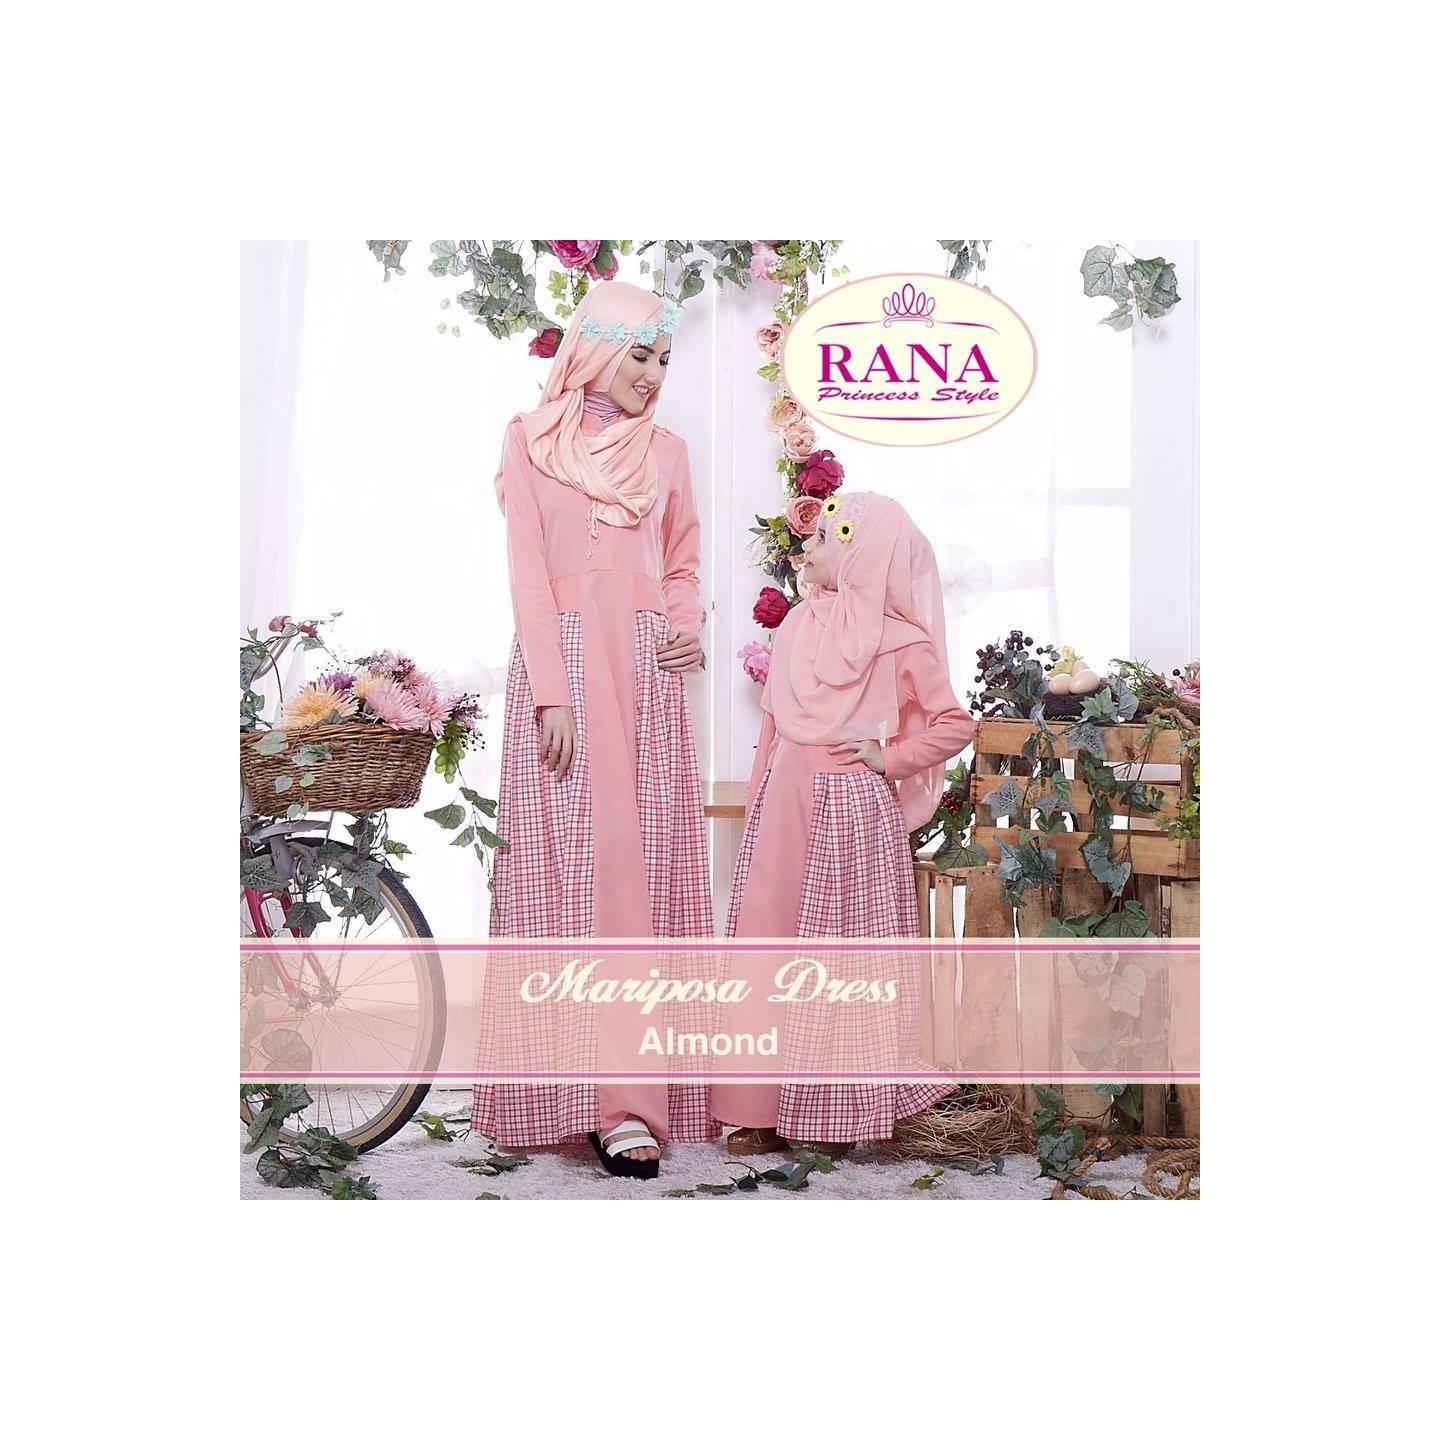 Rana Mariposa Dress/Gamis Pesta/Baju Muslim Couple